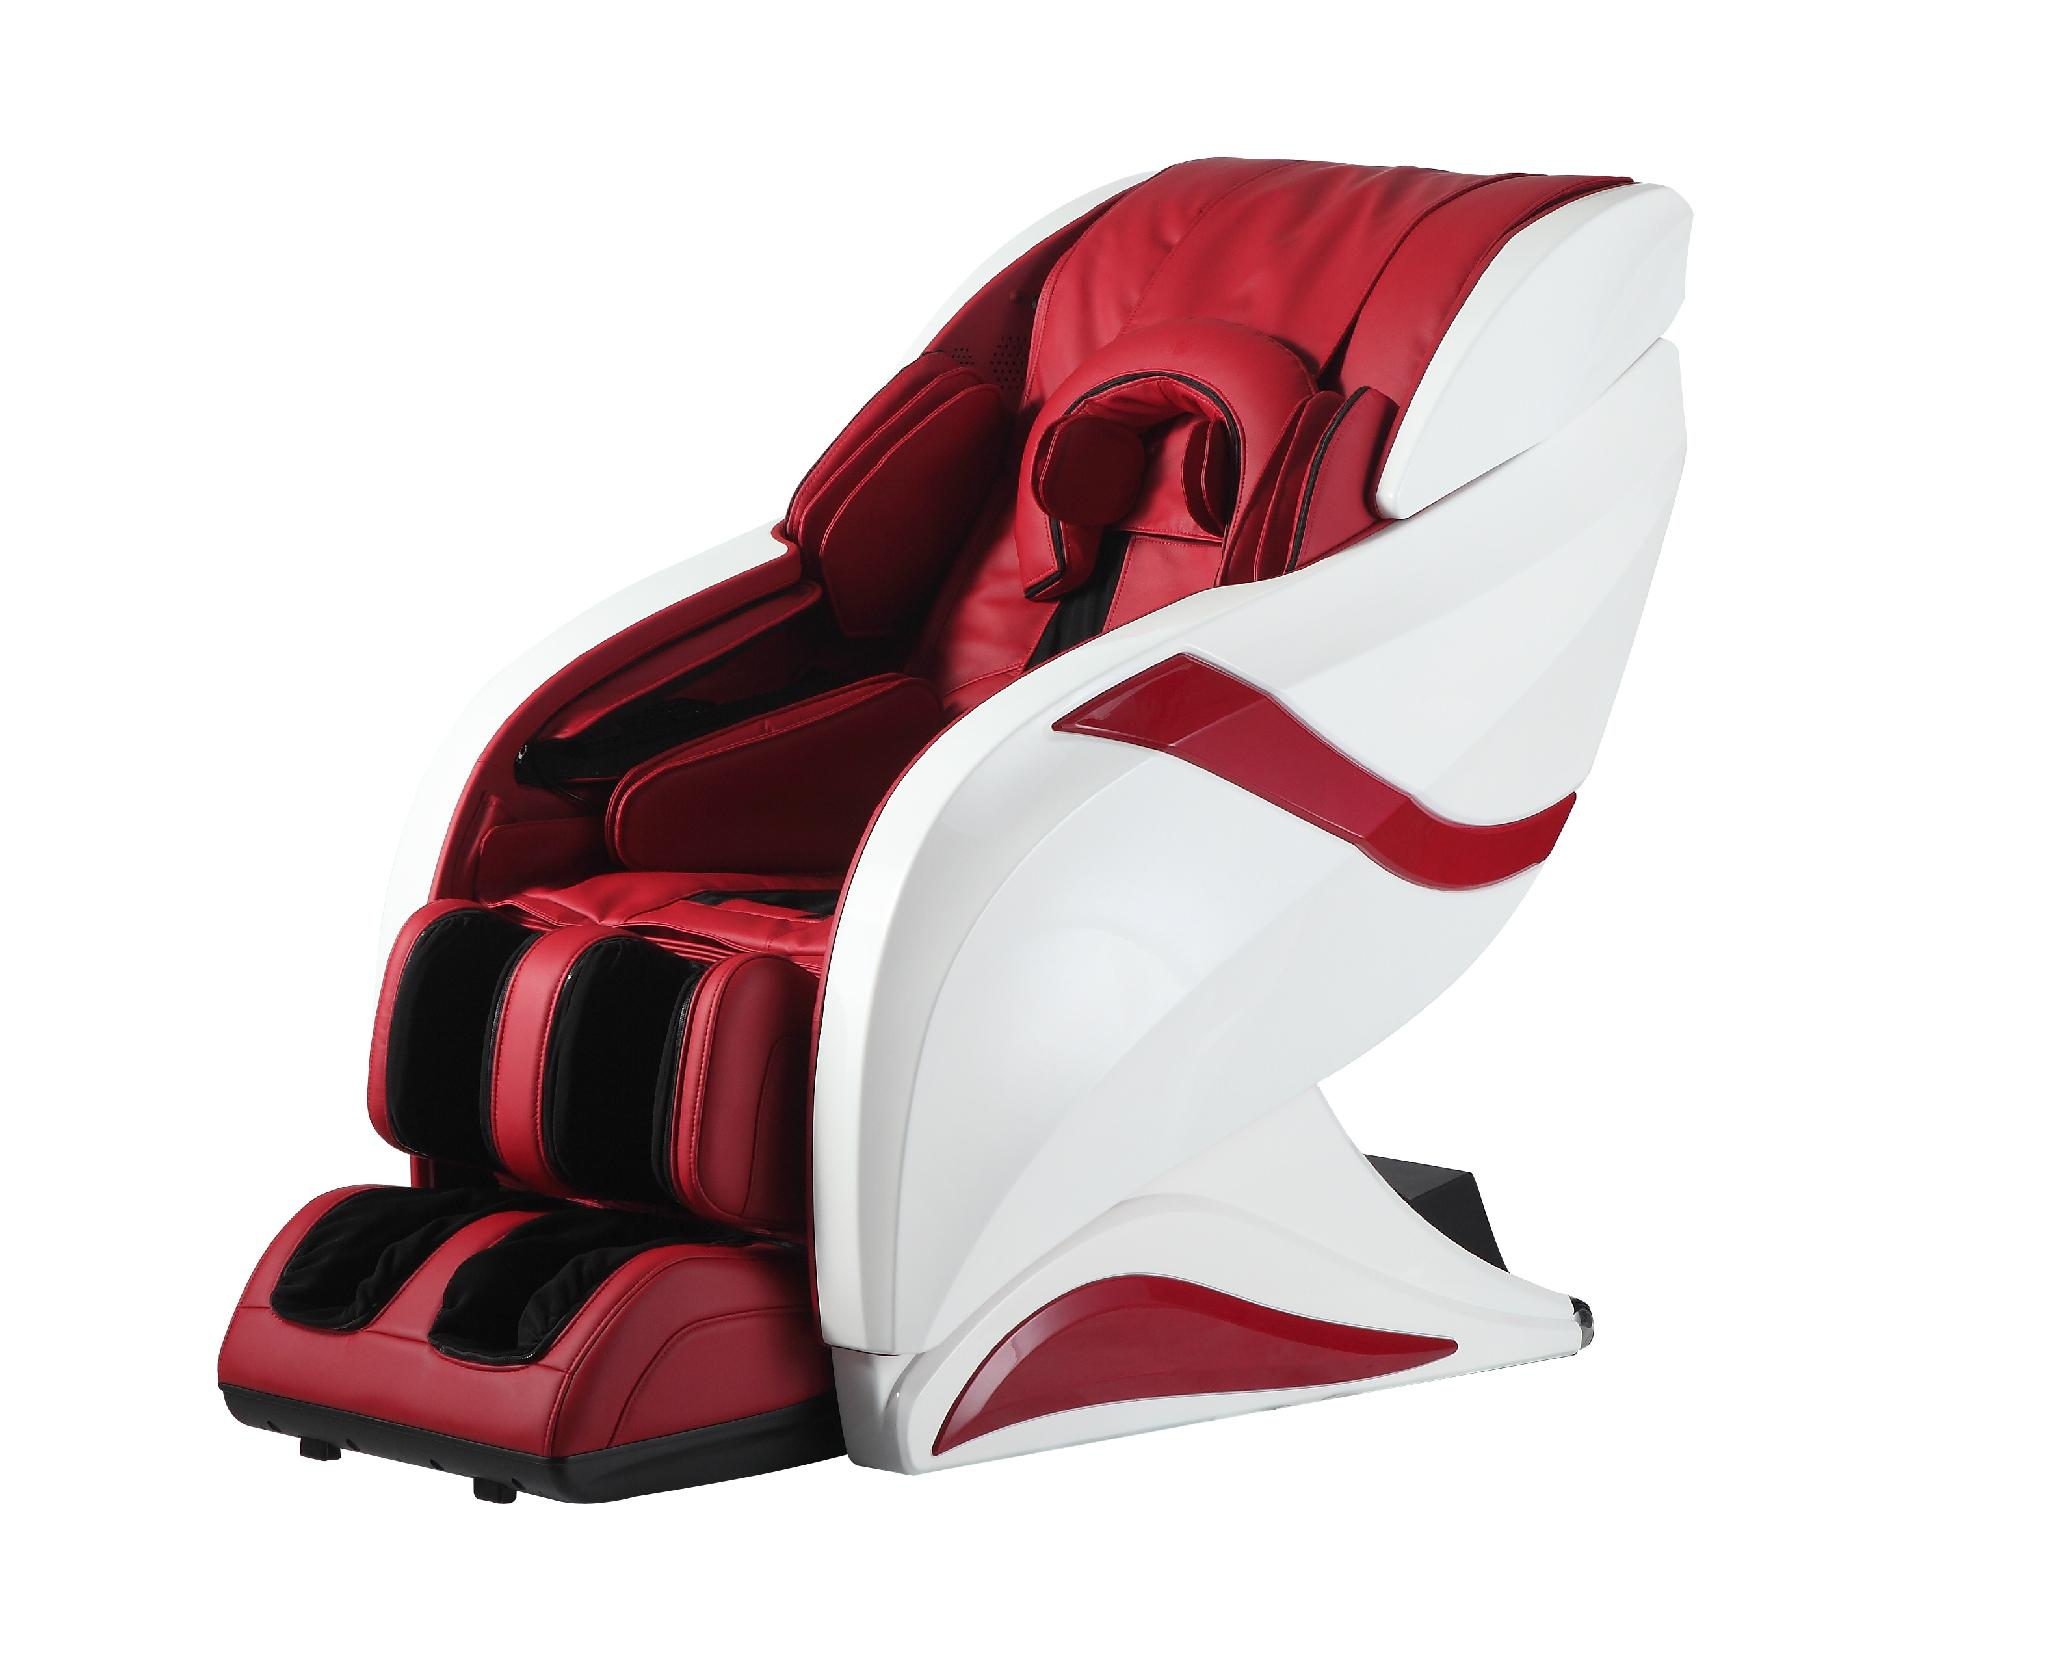 Dotast Massage Chair A08 Red 3